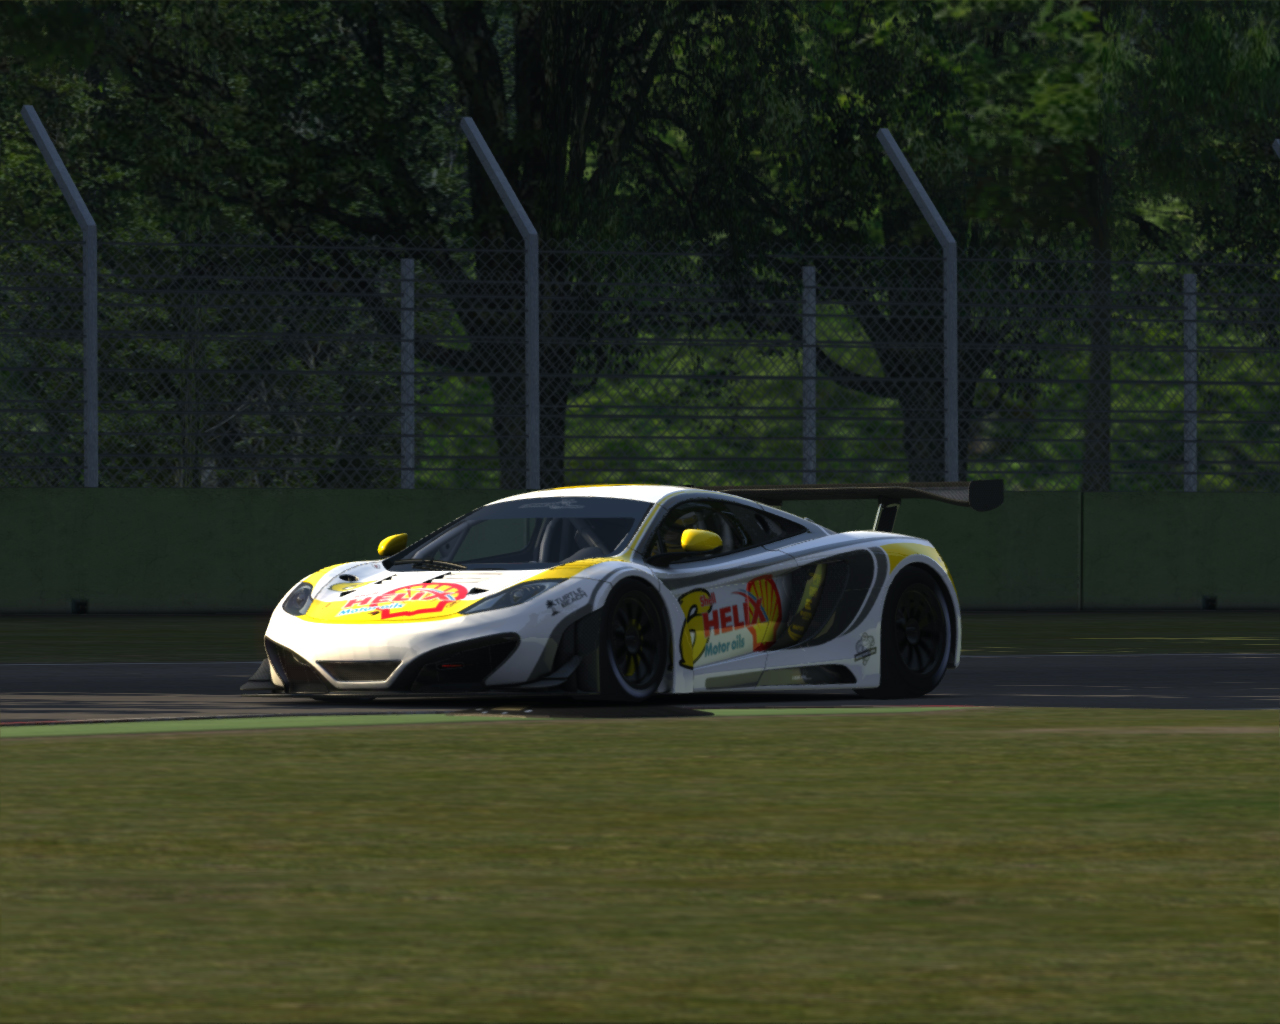 Screenshot_mclaren_mp412c_gt3_imola_5-7-2014-10-27-49.jpg